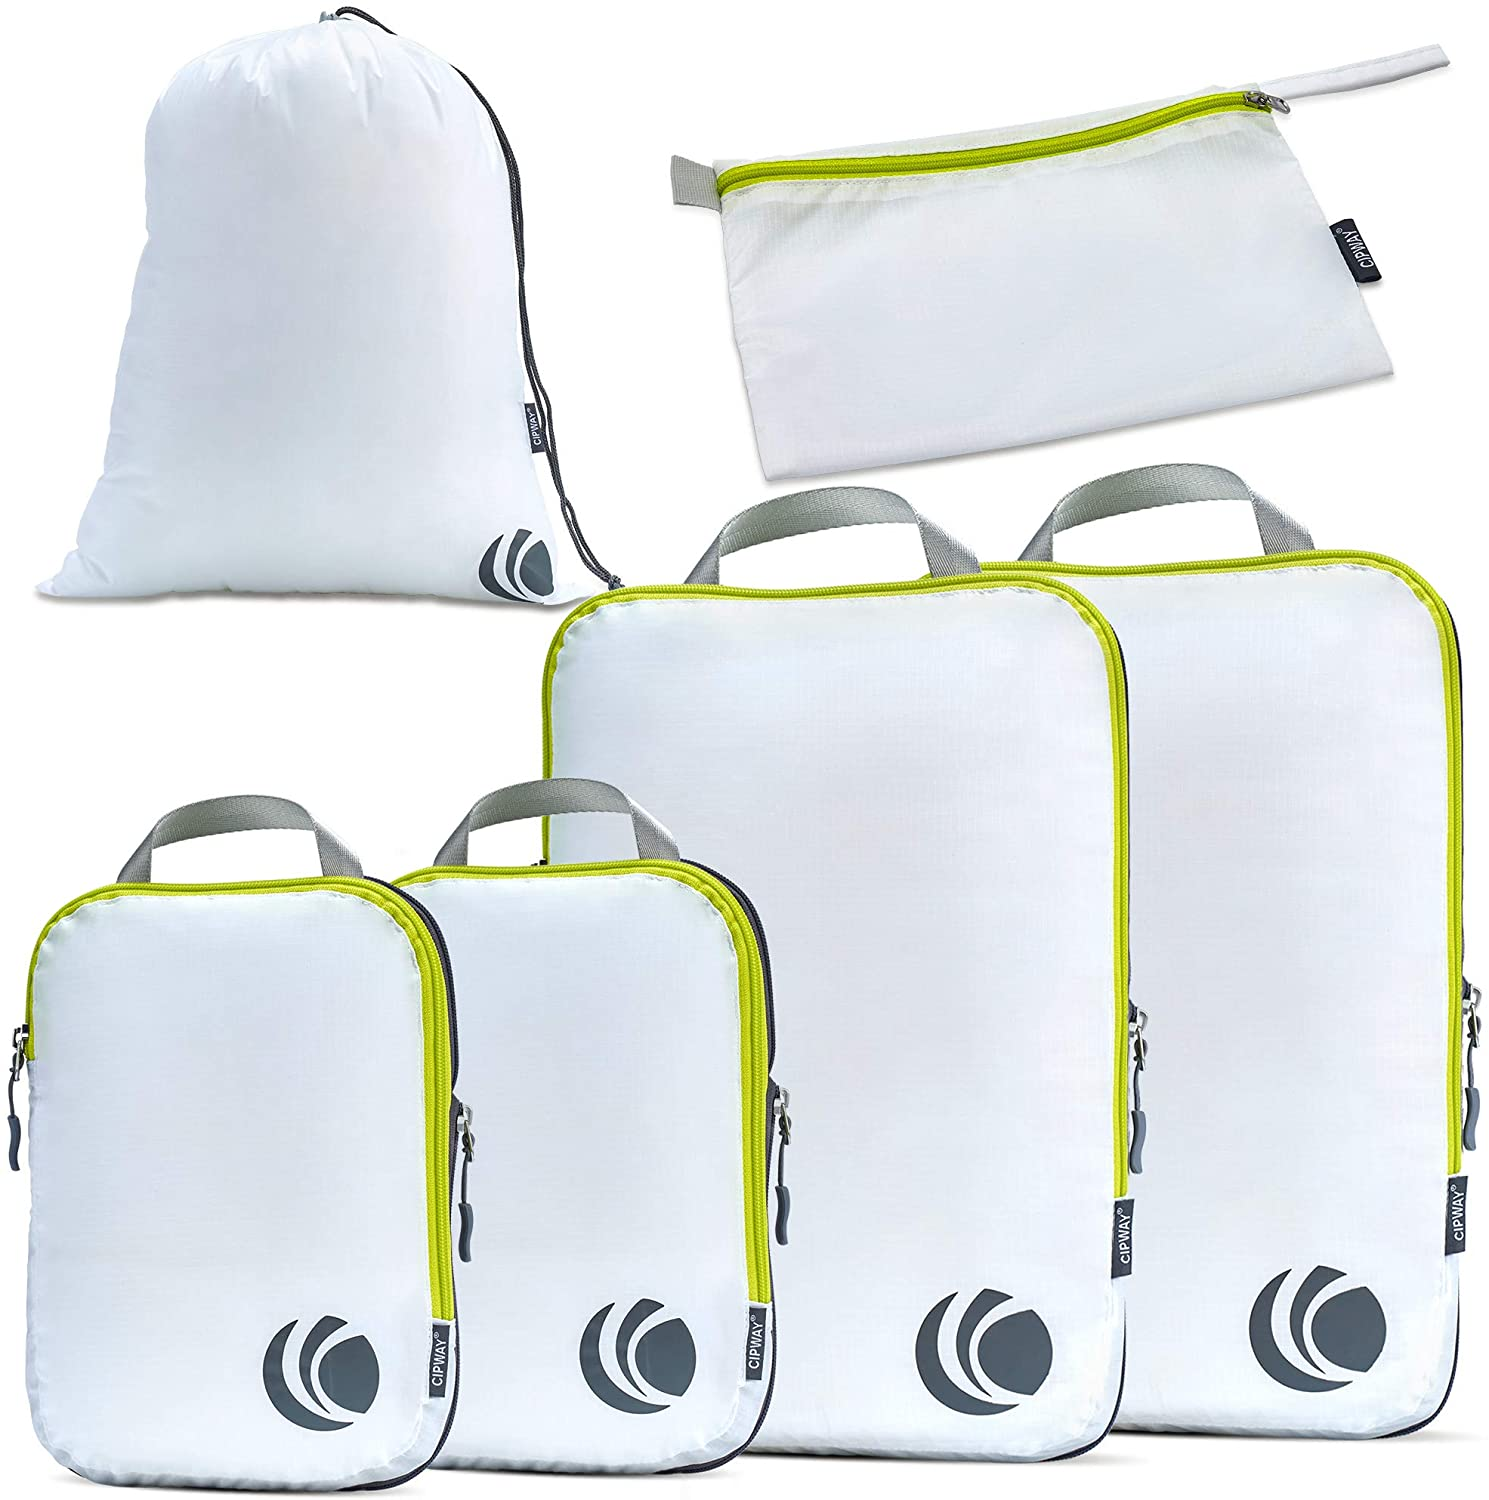 Cipway Compression Packing Cubes for Travel-Expandable Packing Organizers for Carry on Luggage//Backpack Green 3pcs